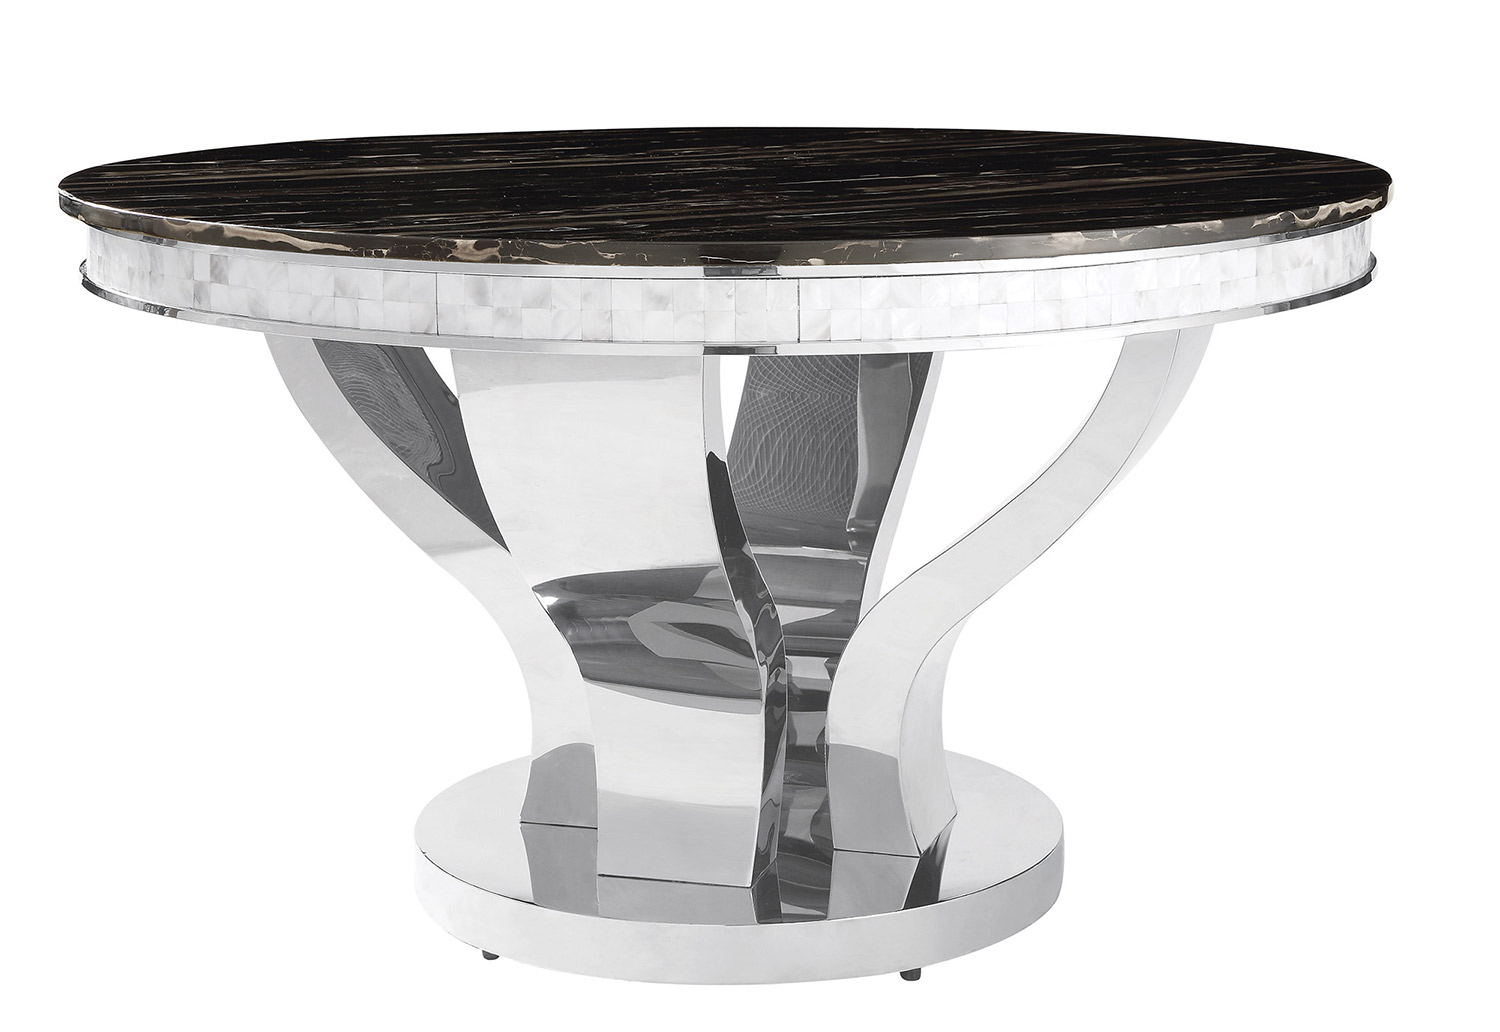 Coaster Anchorage Round Dining Table - Chrome